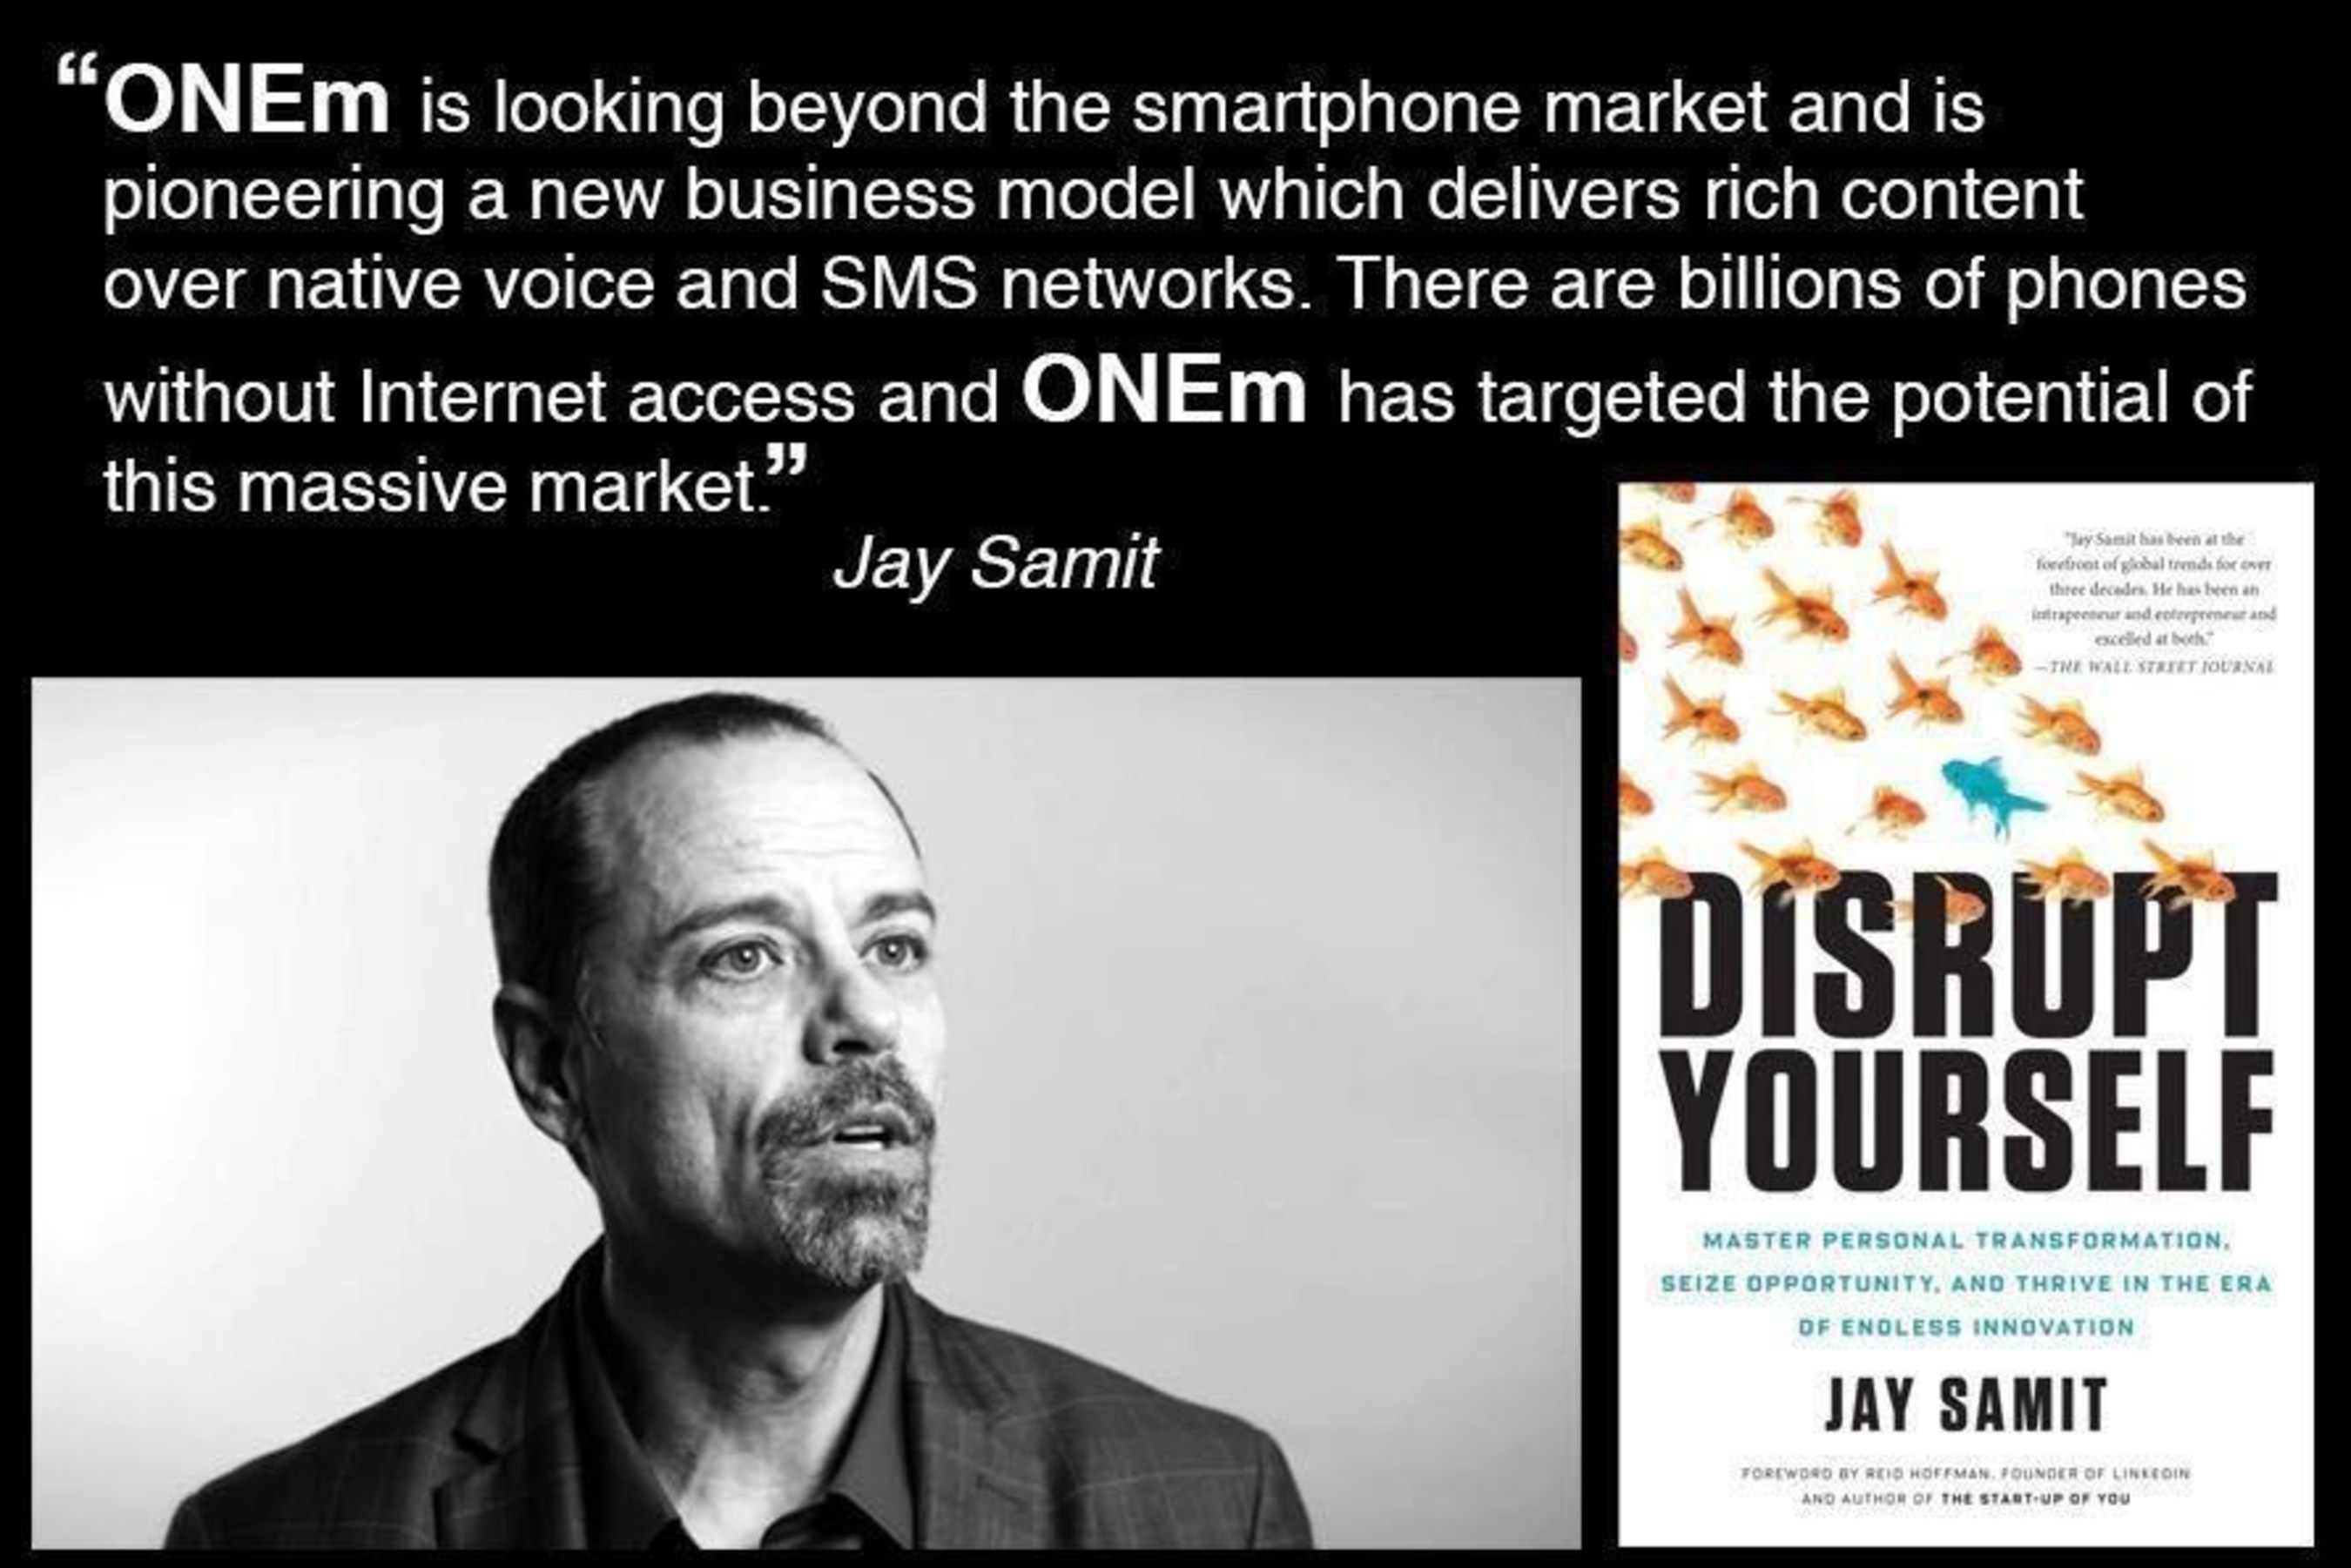 ONEm invites Jay Samit to give Keynote at Exclusive Theatre Event at MWC 2016